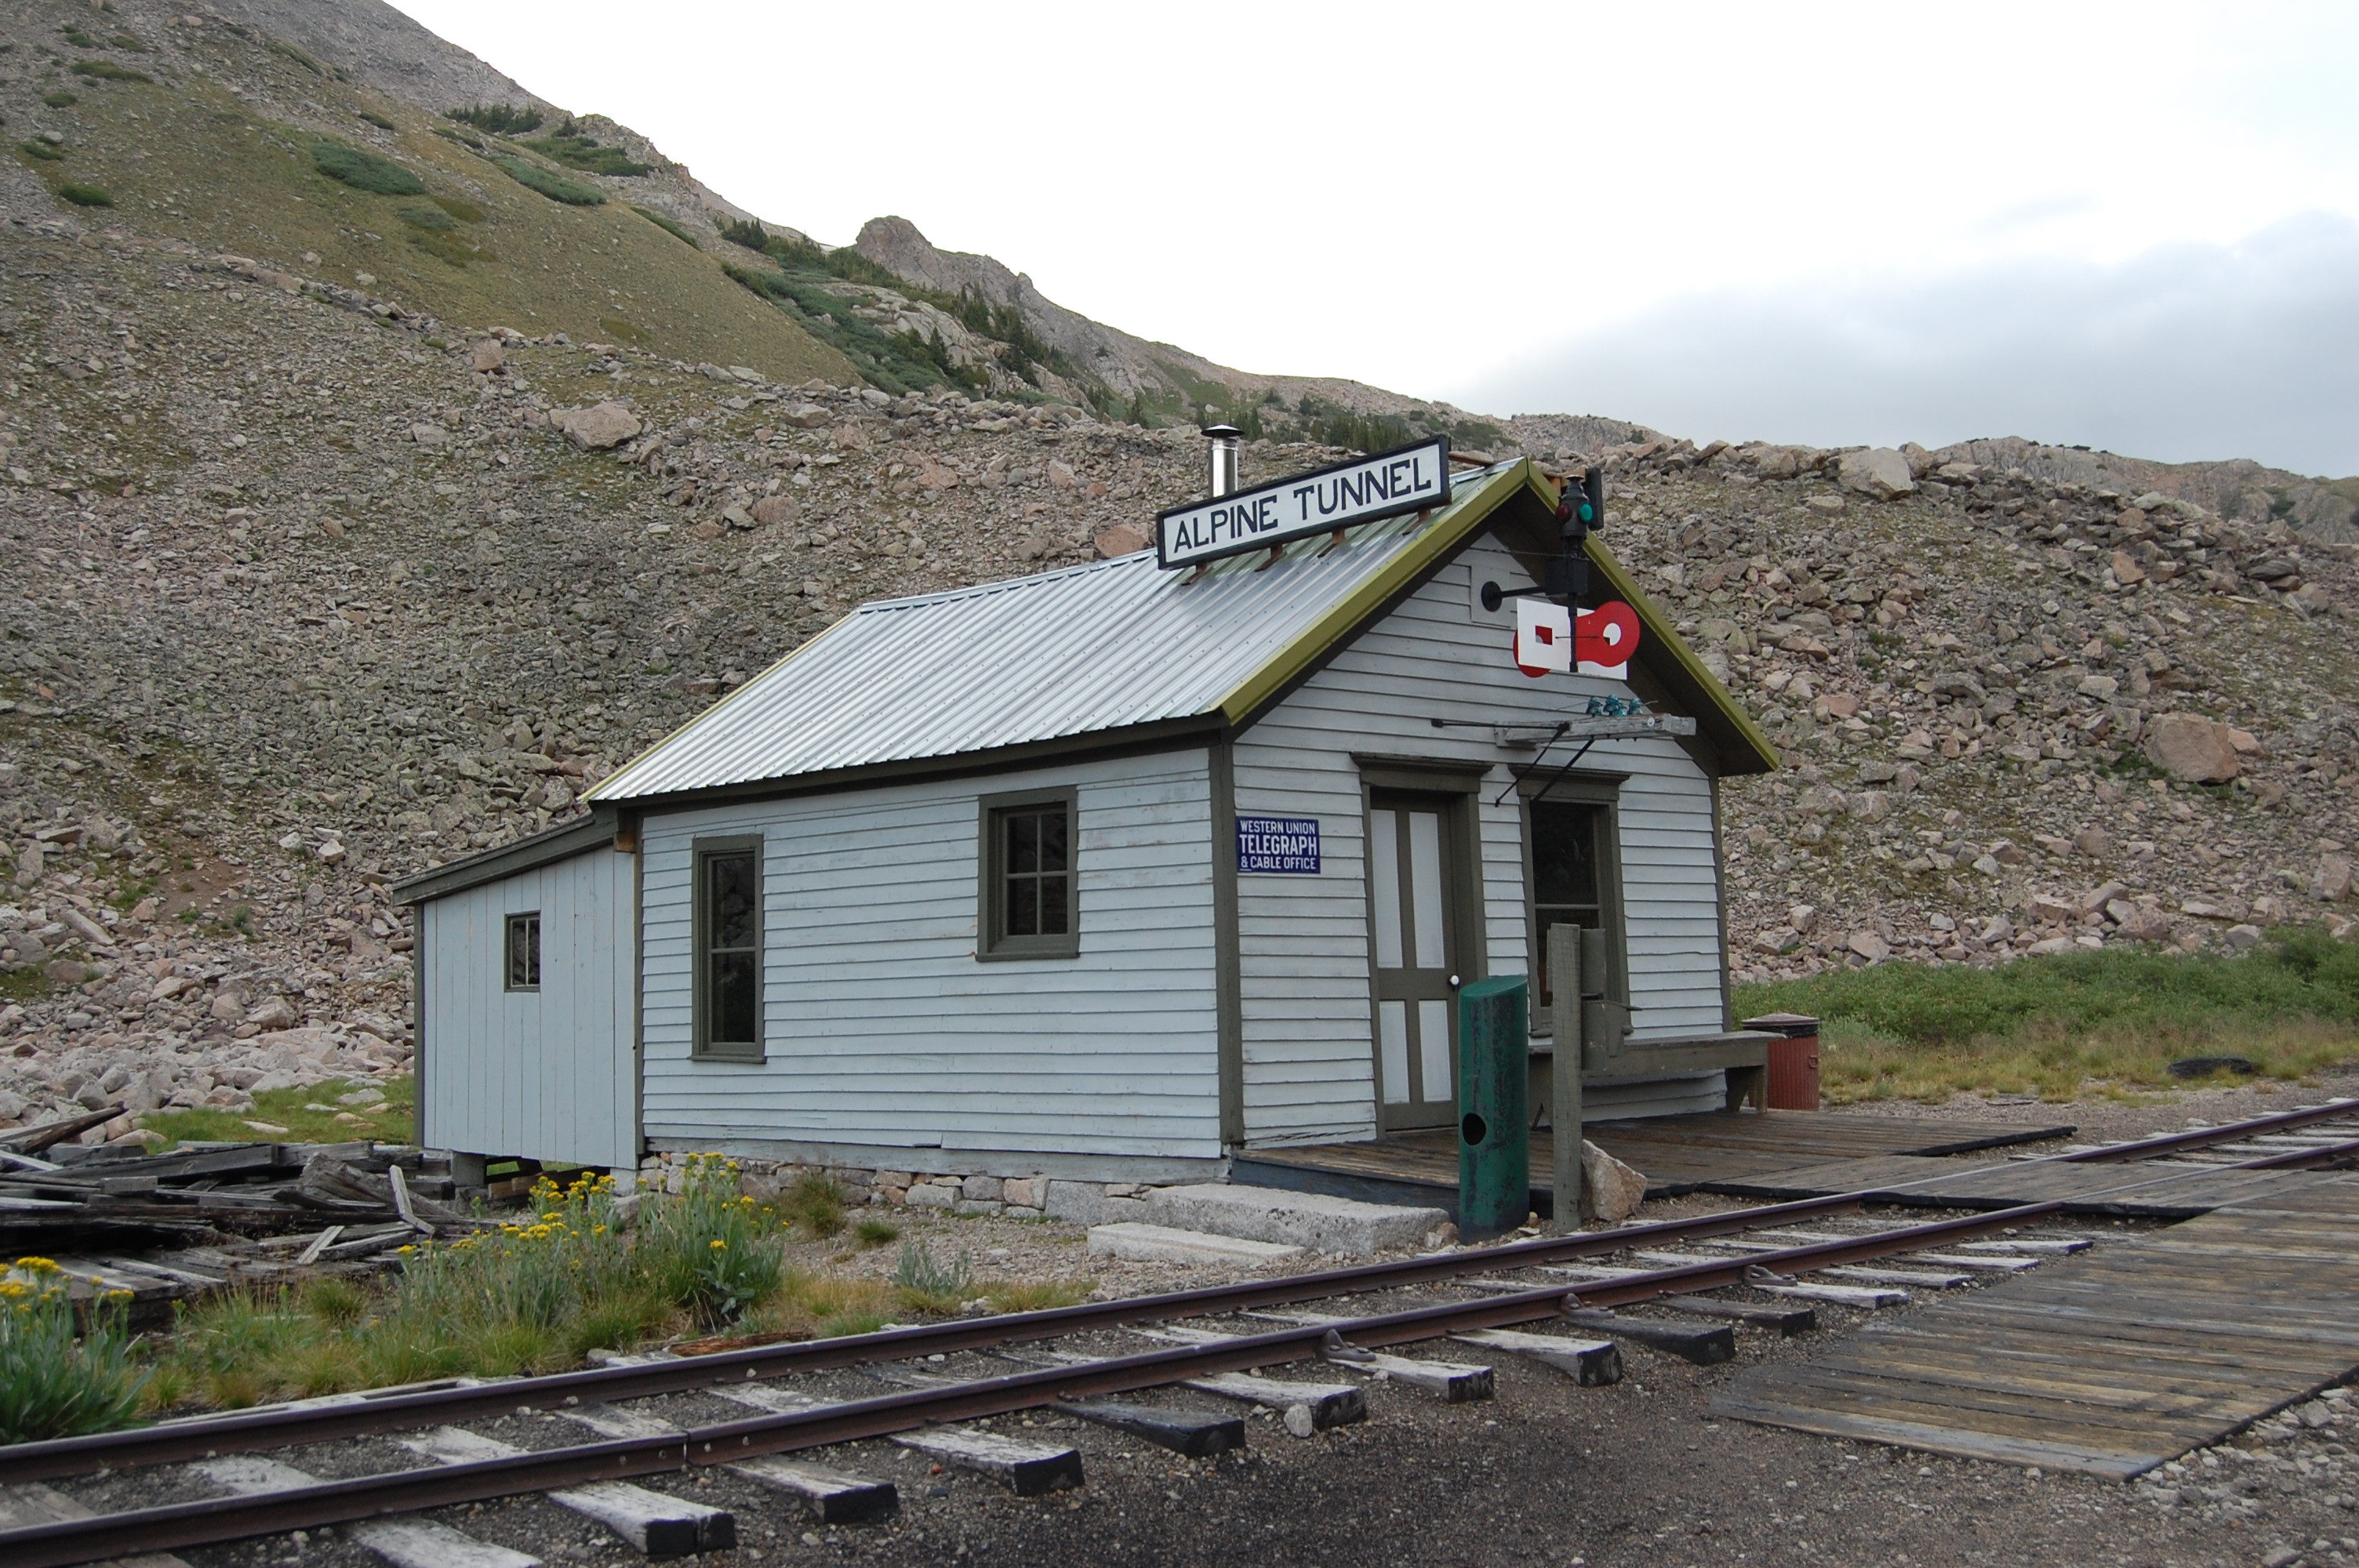 Train Depot at Alpline Tunnel